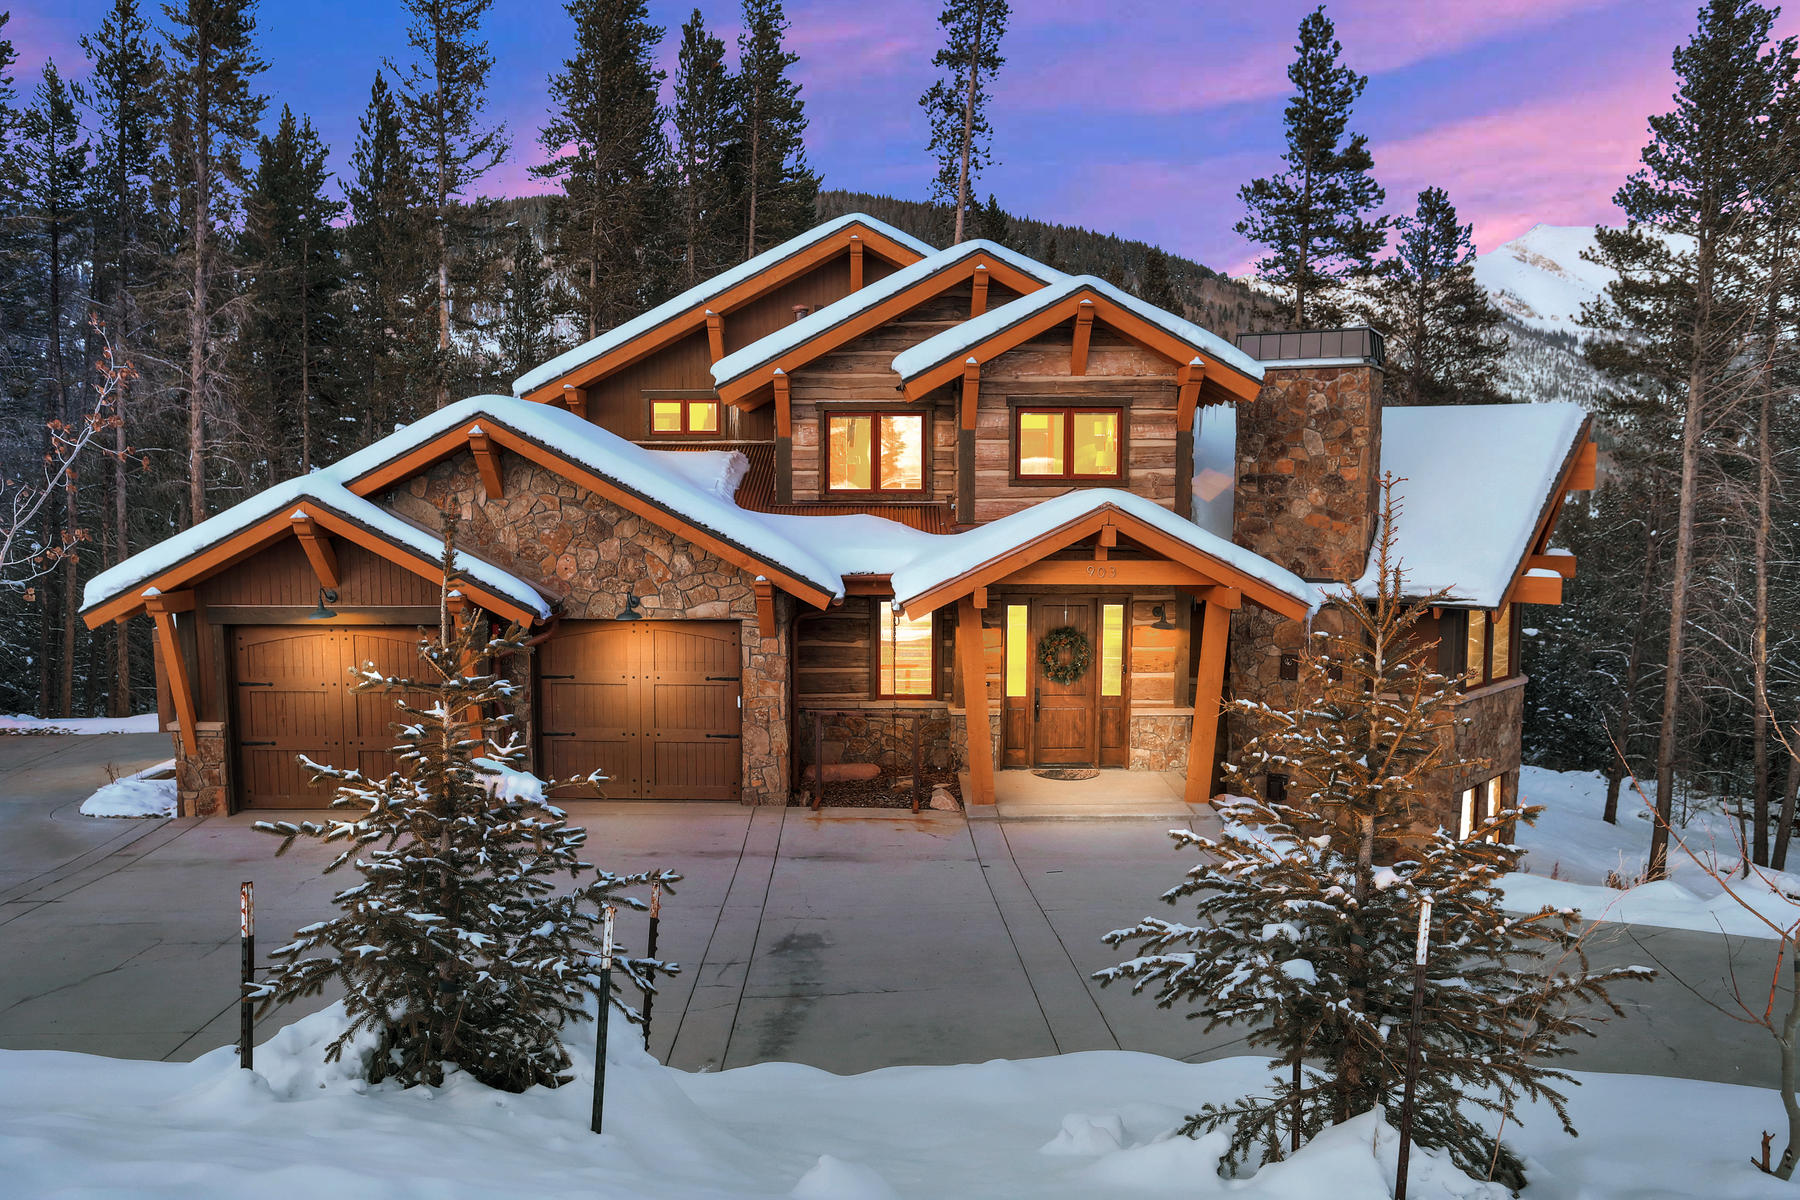 Single Family Home for Active at Luxury Copper Ski Home 903 Beeler Place Copper Mountain, Colorado 80443 United States